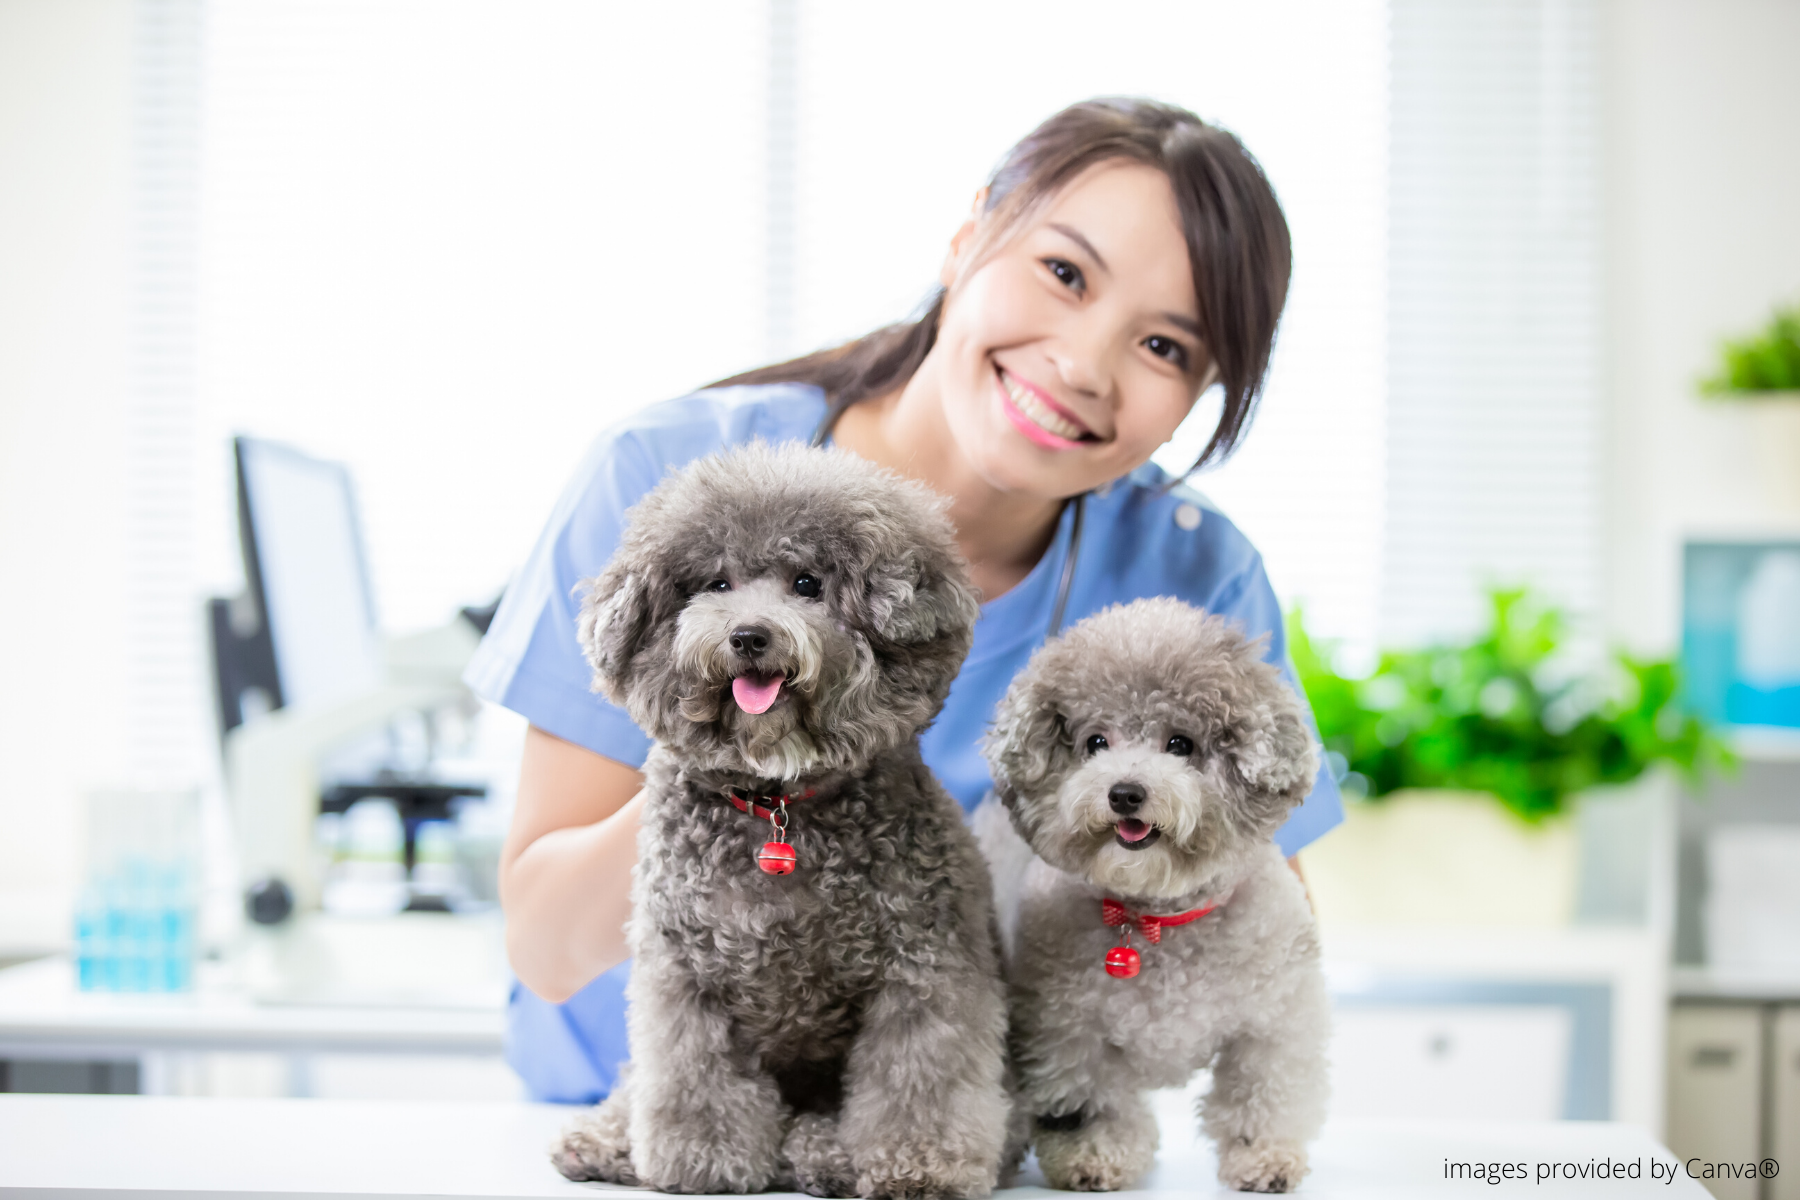 two dogs smiling with a veterinary employee